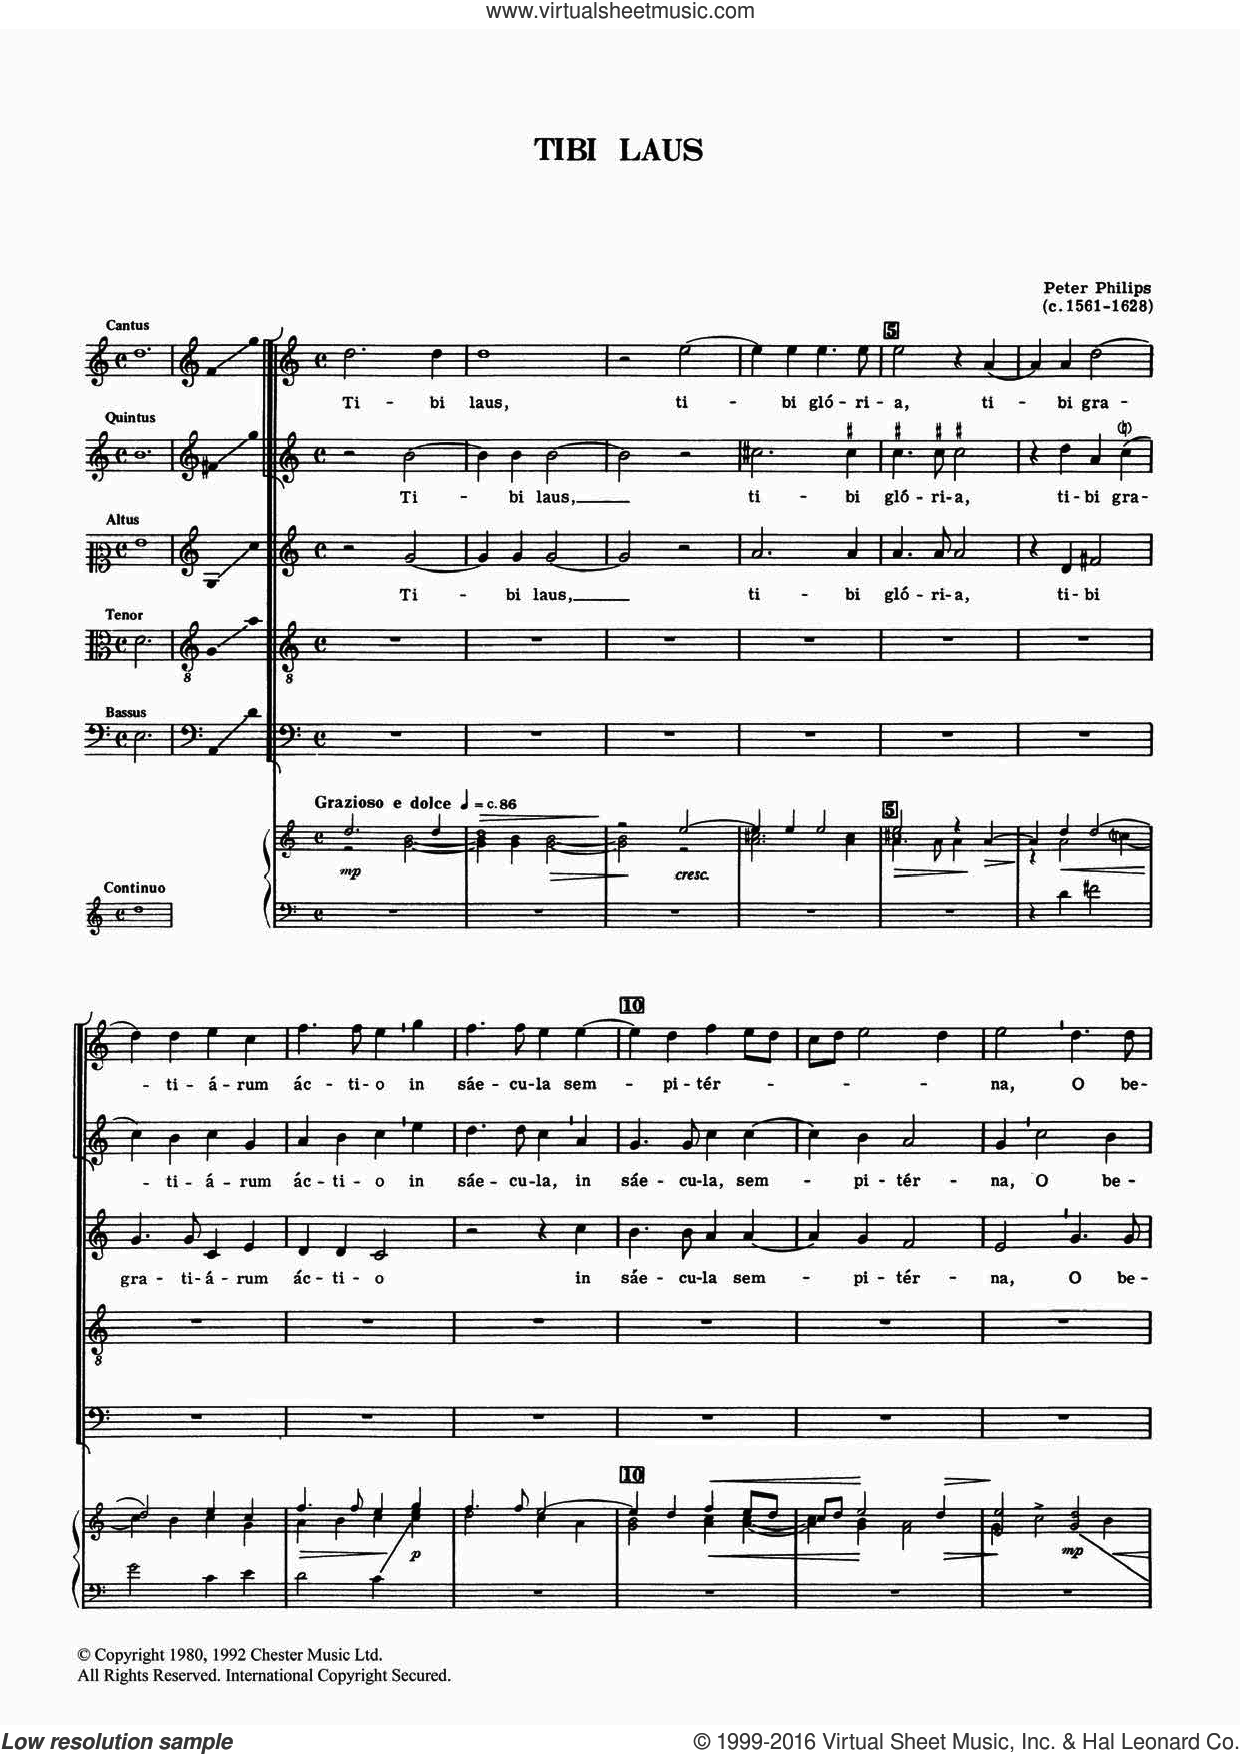 Tibi Laus sheet music for voice, piano or guitar by Peter Philips. Score Image Preview.